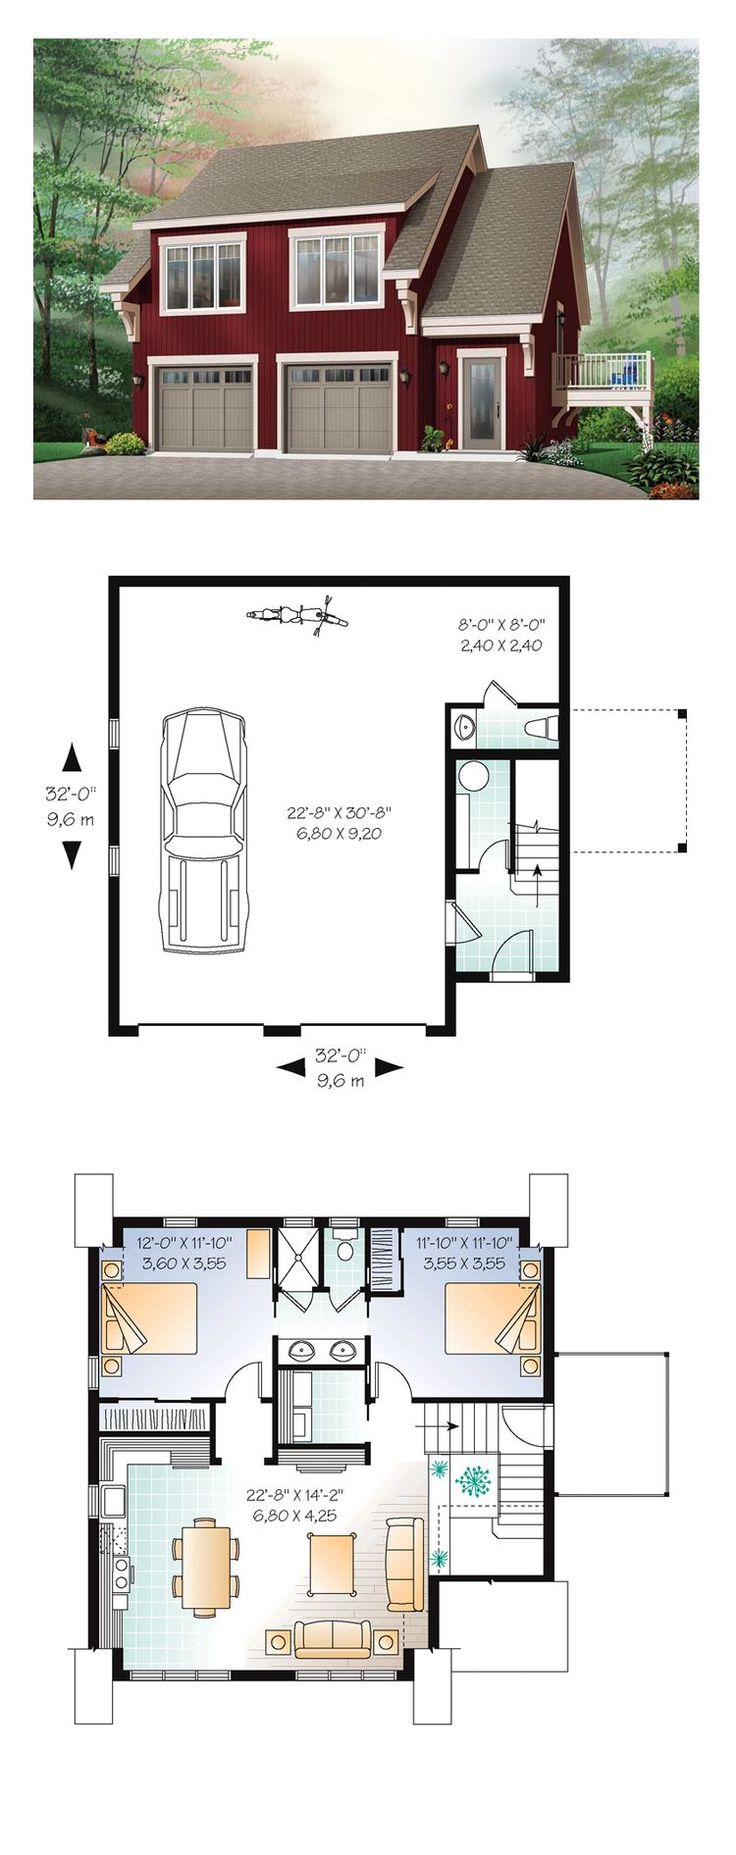 41 best images about new house ideas on pinterest craftsman breakfast nooks and tin ceiling tiles - Savvy small apartment kitchen design layout for perfect kitchen with great efficiency ...